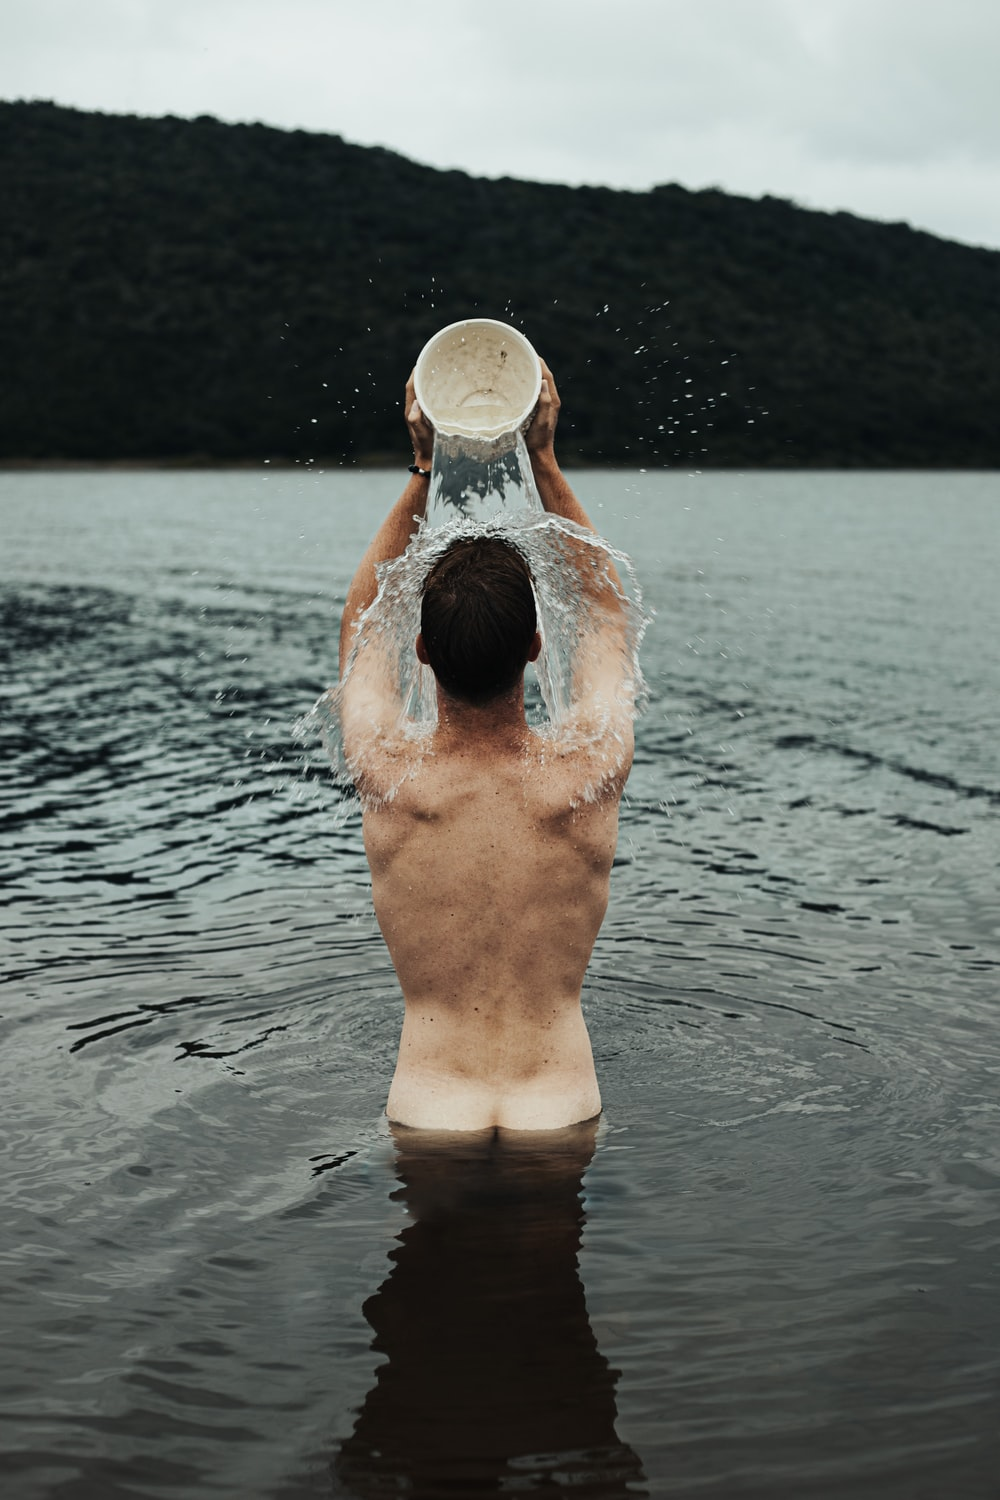 man in water holding white plastic bucket